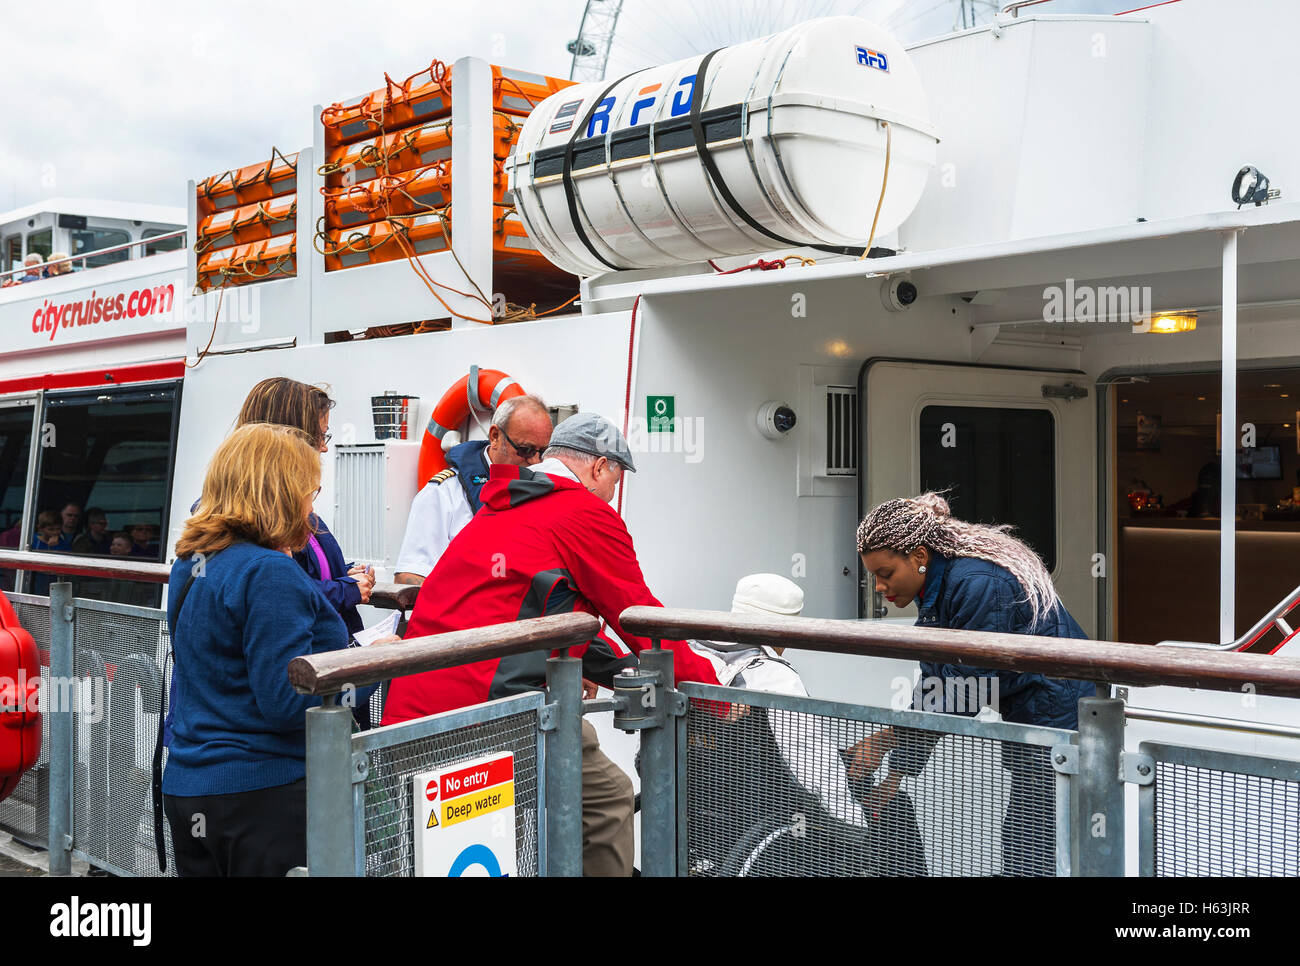 London, the UK-May 2016: helping a disable person to embark for the Thames cruise - Stock Image